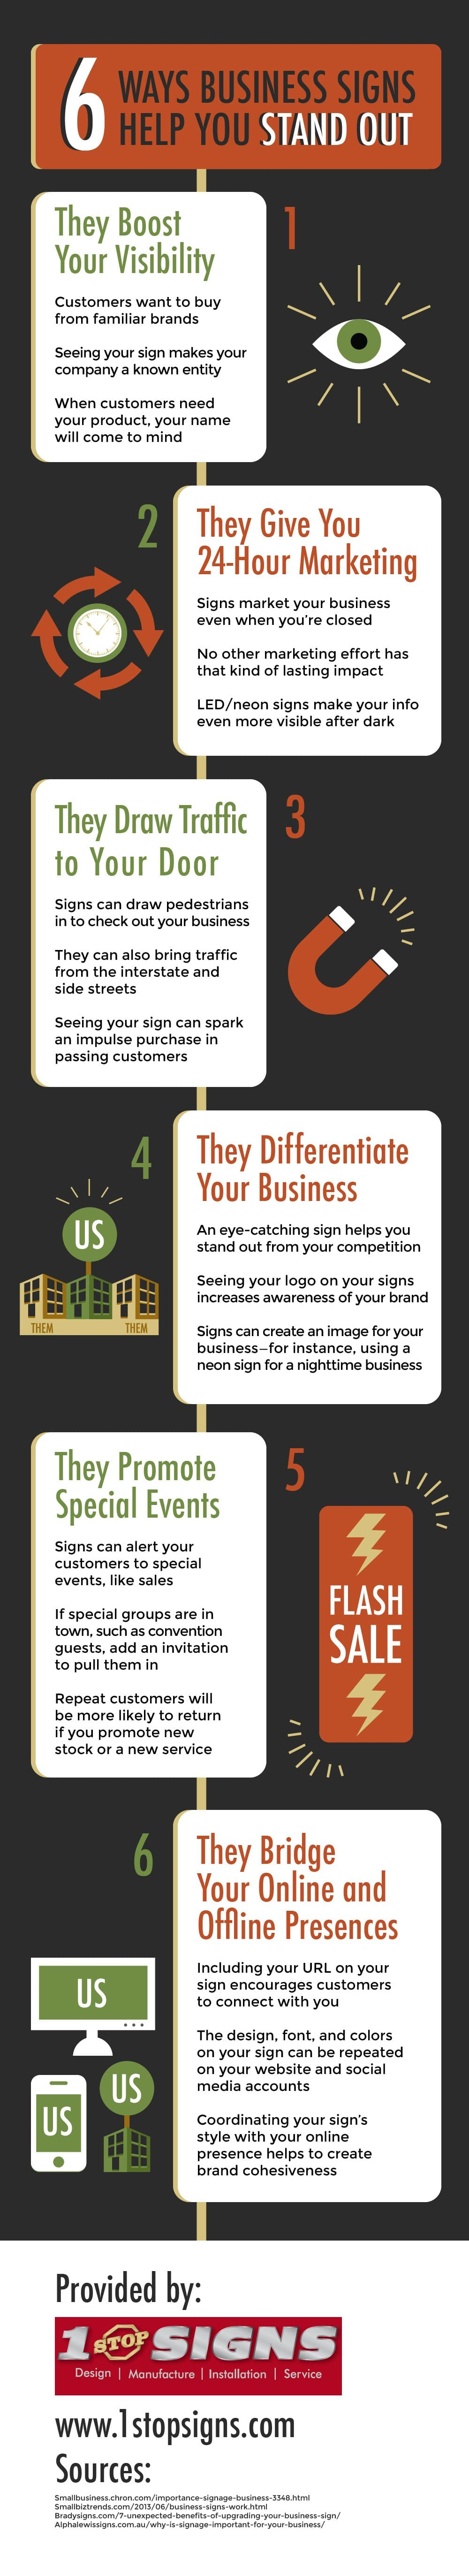 6 ways business signs can help your business stand out